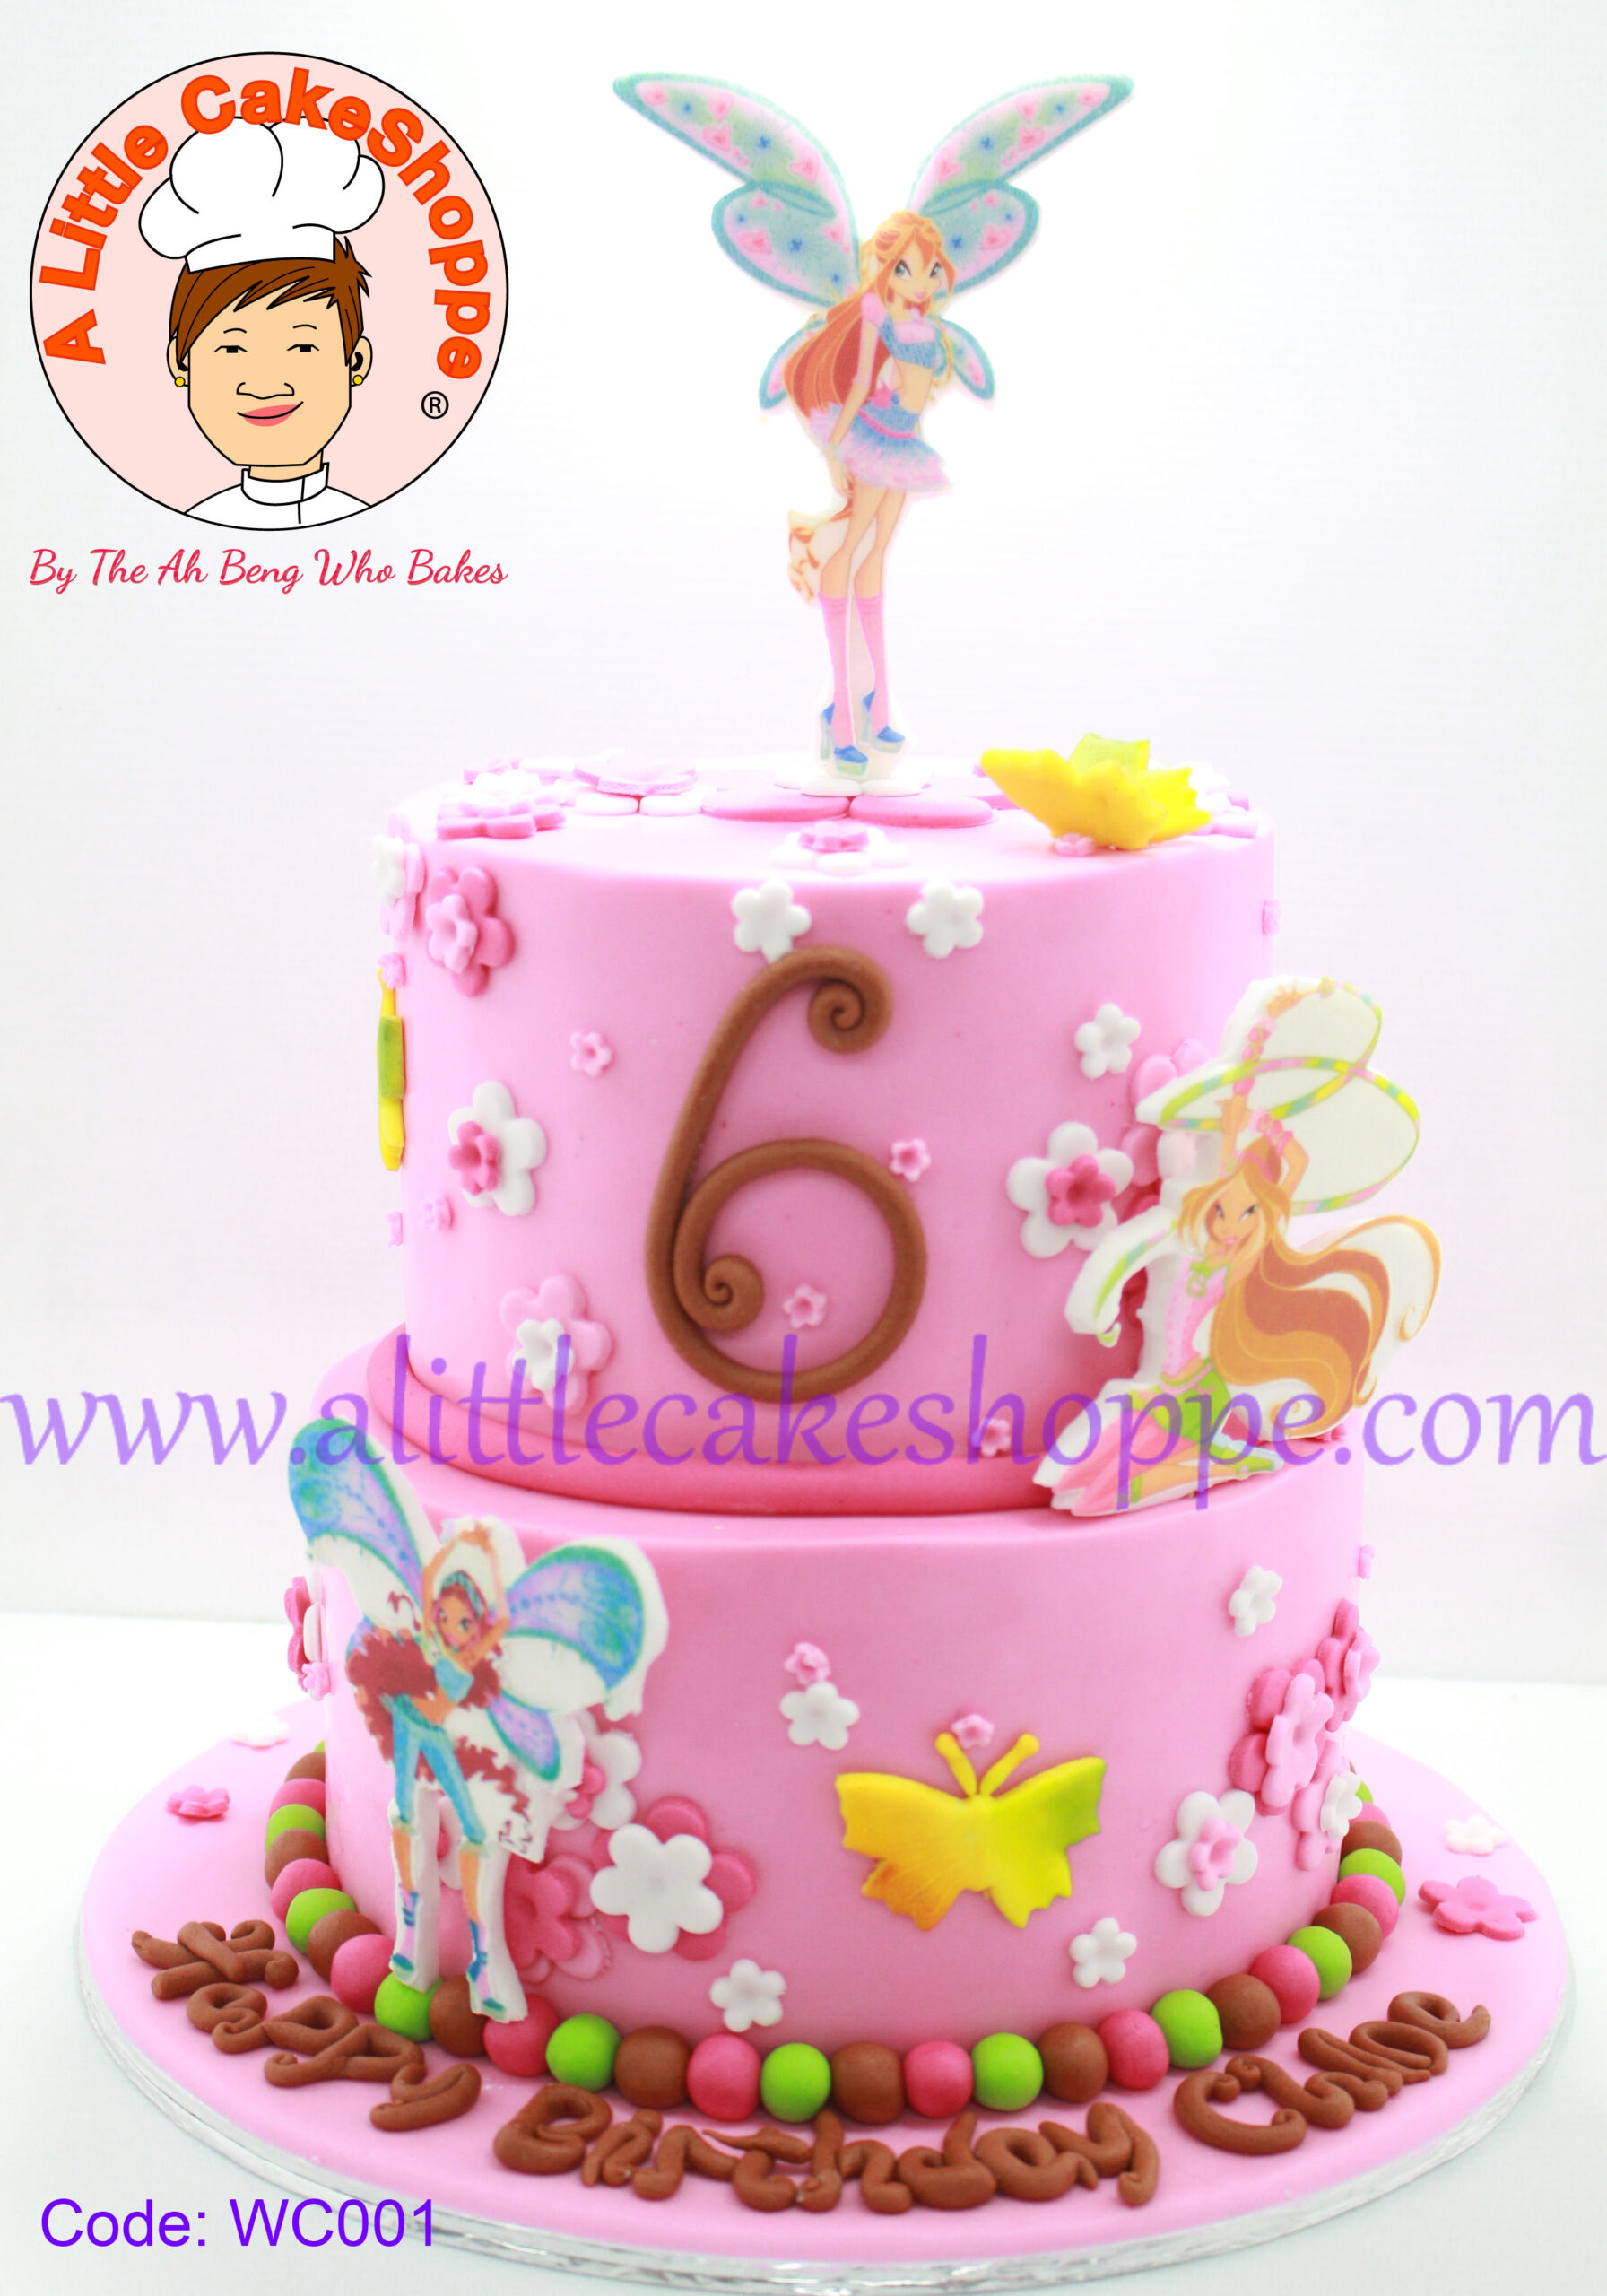 Best Customised Cake Singapore custom cake 2D 3D birthday cake cupcakes wedding corporate events anniversary fondant fresh cream buttercream cakes alittlecakeshoppe compliments review singapore bakers SG cakeshop ah beng who bakes winx club fairies